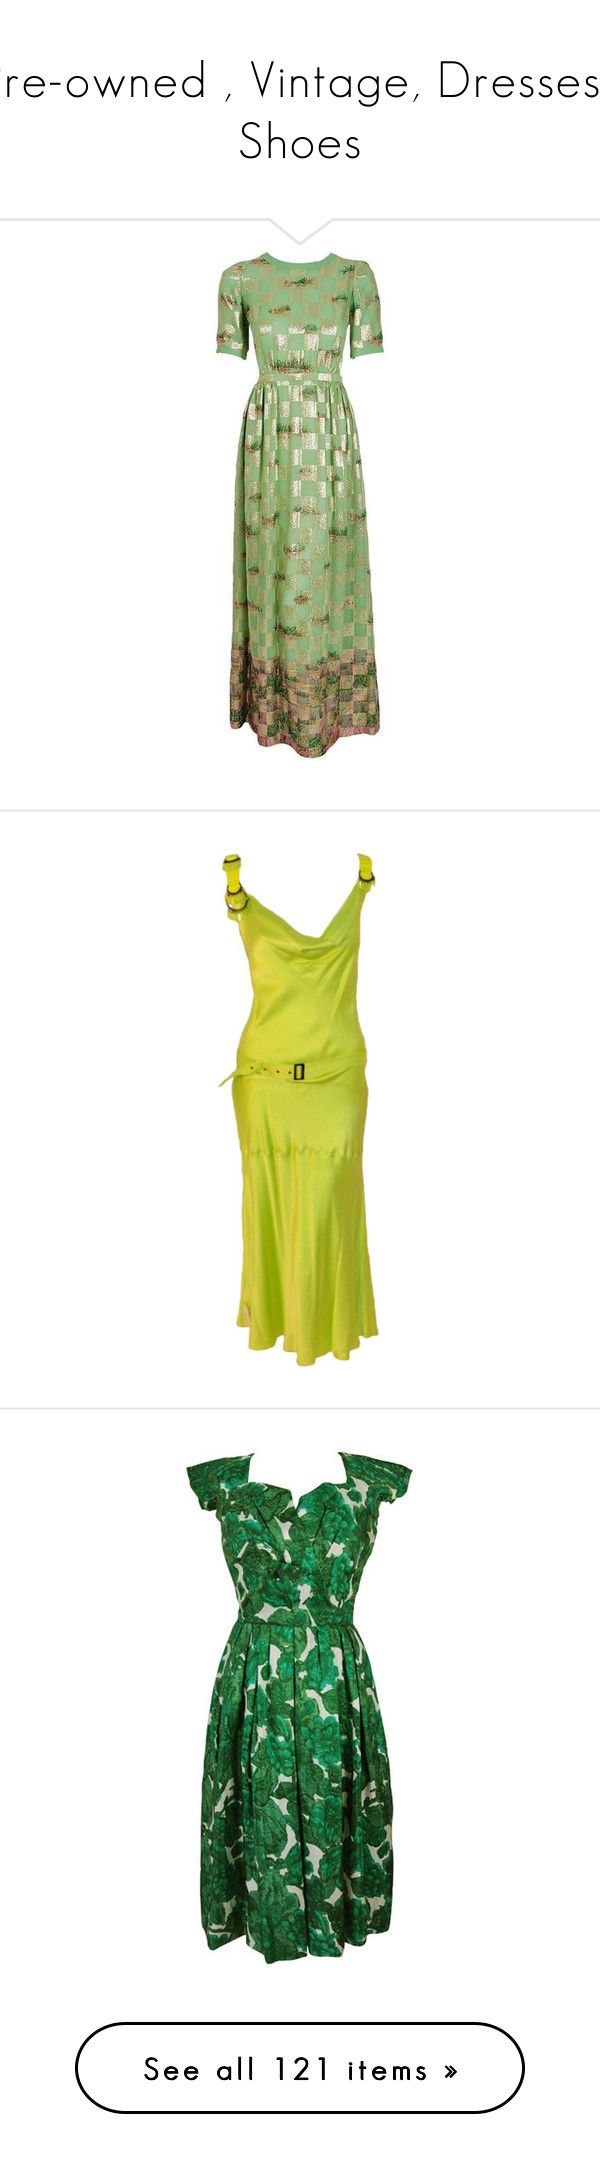 """Pre-owned , Vintage, Dresses,, Shoes"" by judymjohnson ❤ liked on Polyvore featuring dresses, gowns, green, party gowns, short-sleeve dresses, green dress, green party dress, going out dresses, yellow cocktail dress and couture cocktail dresses"